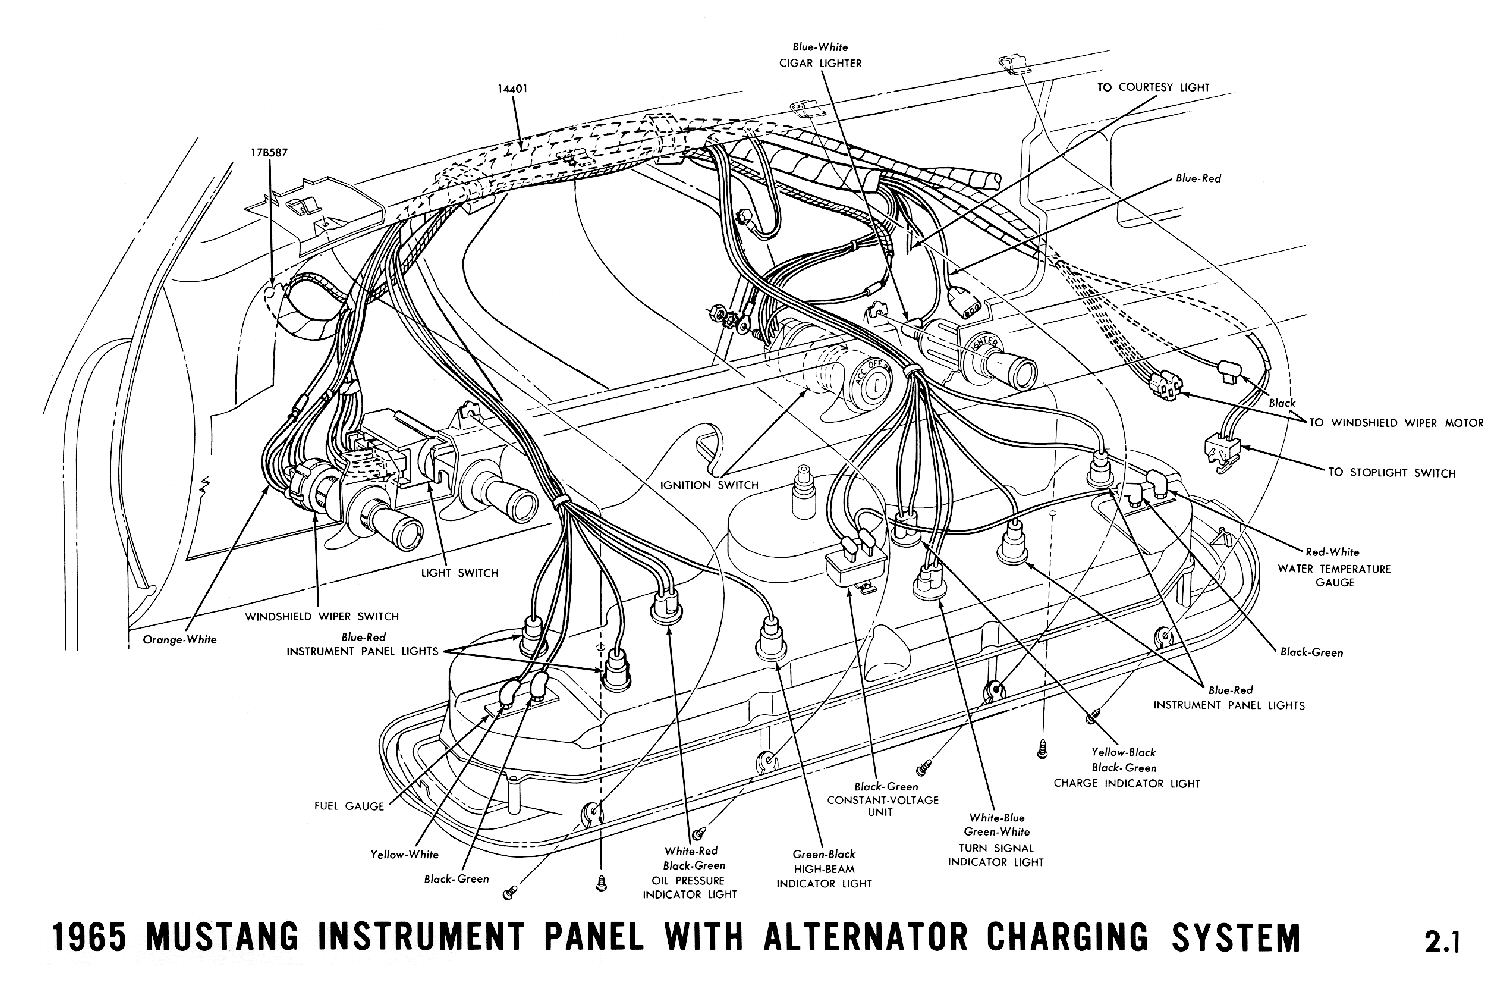 1965a 1965 mustang wiring diagrams average joe restoration 1965 ford mustang wiring diagrams at suagrazia.org